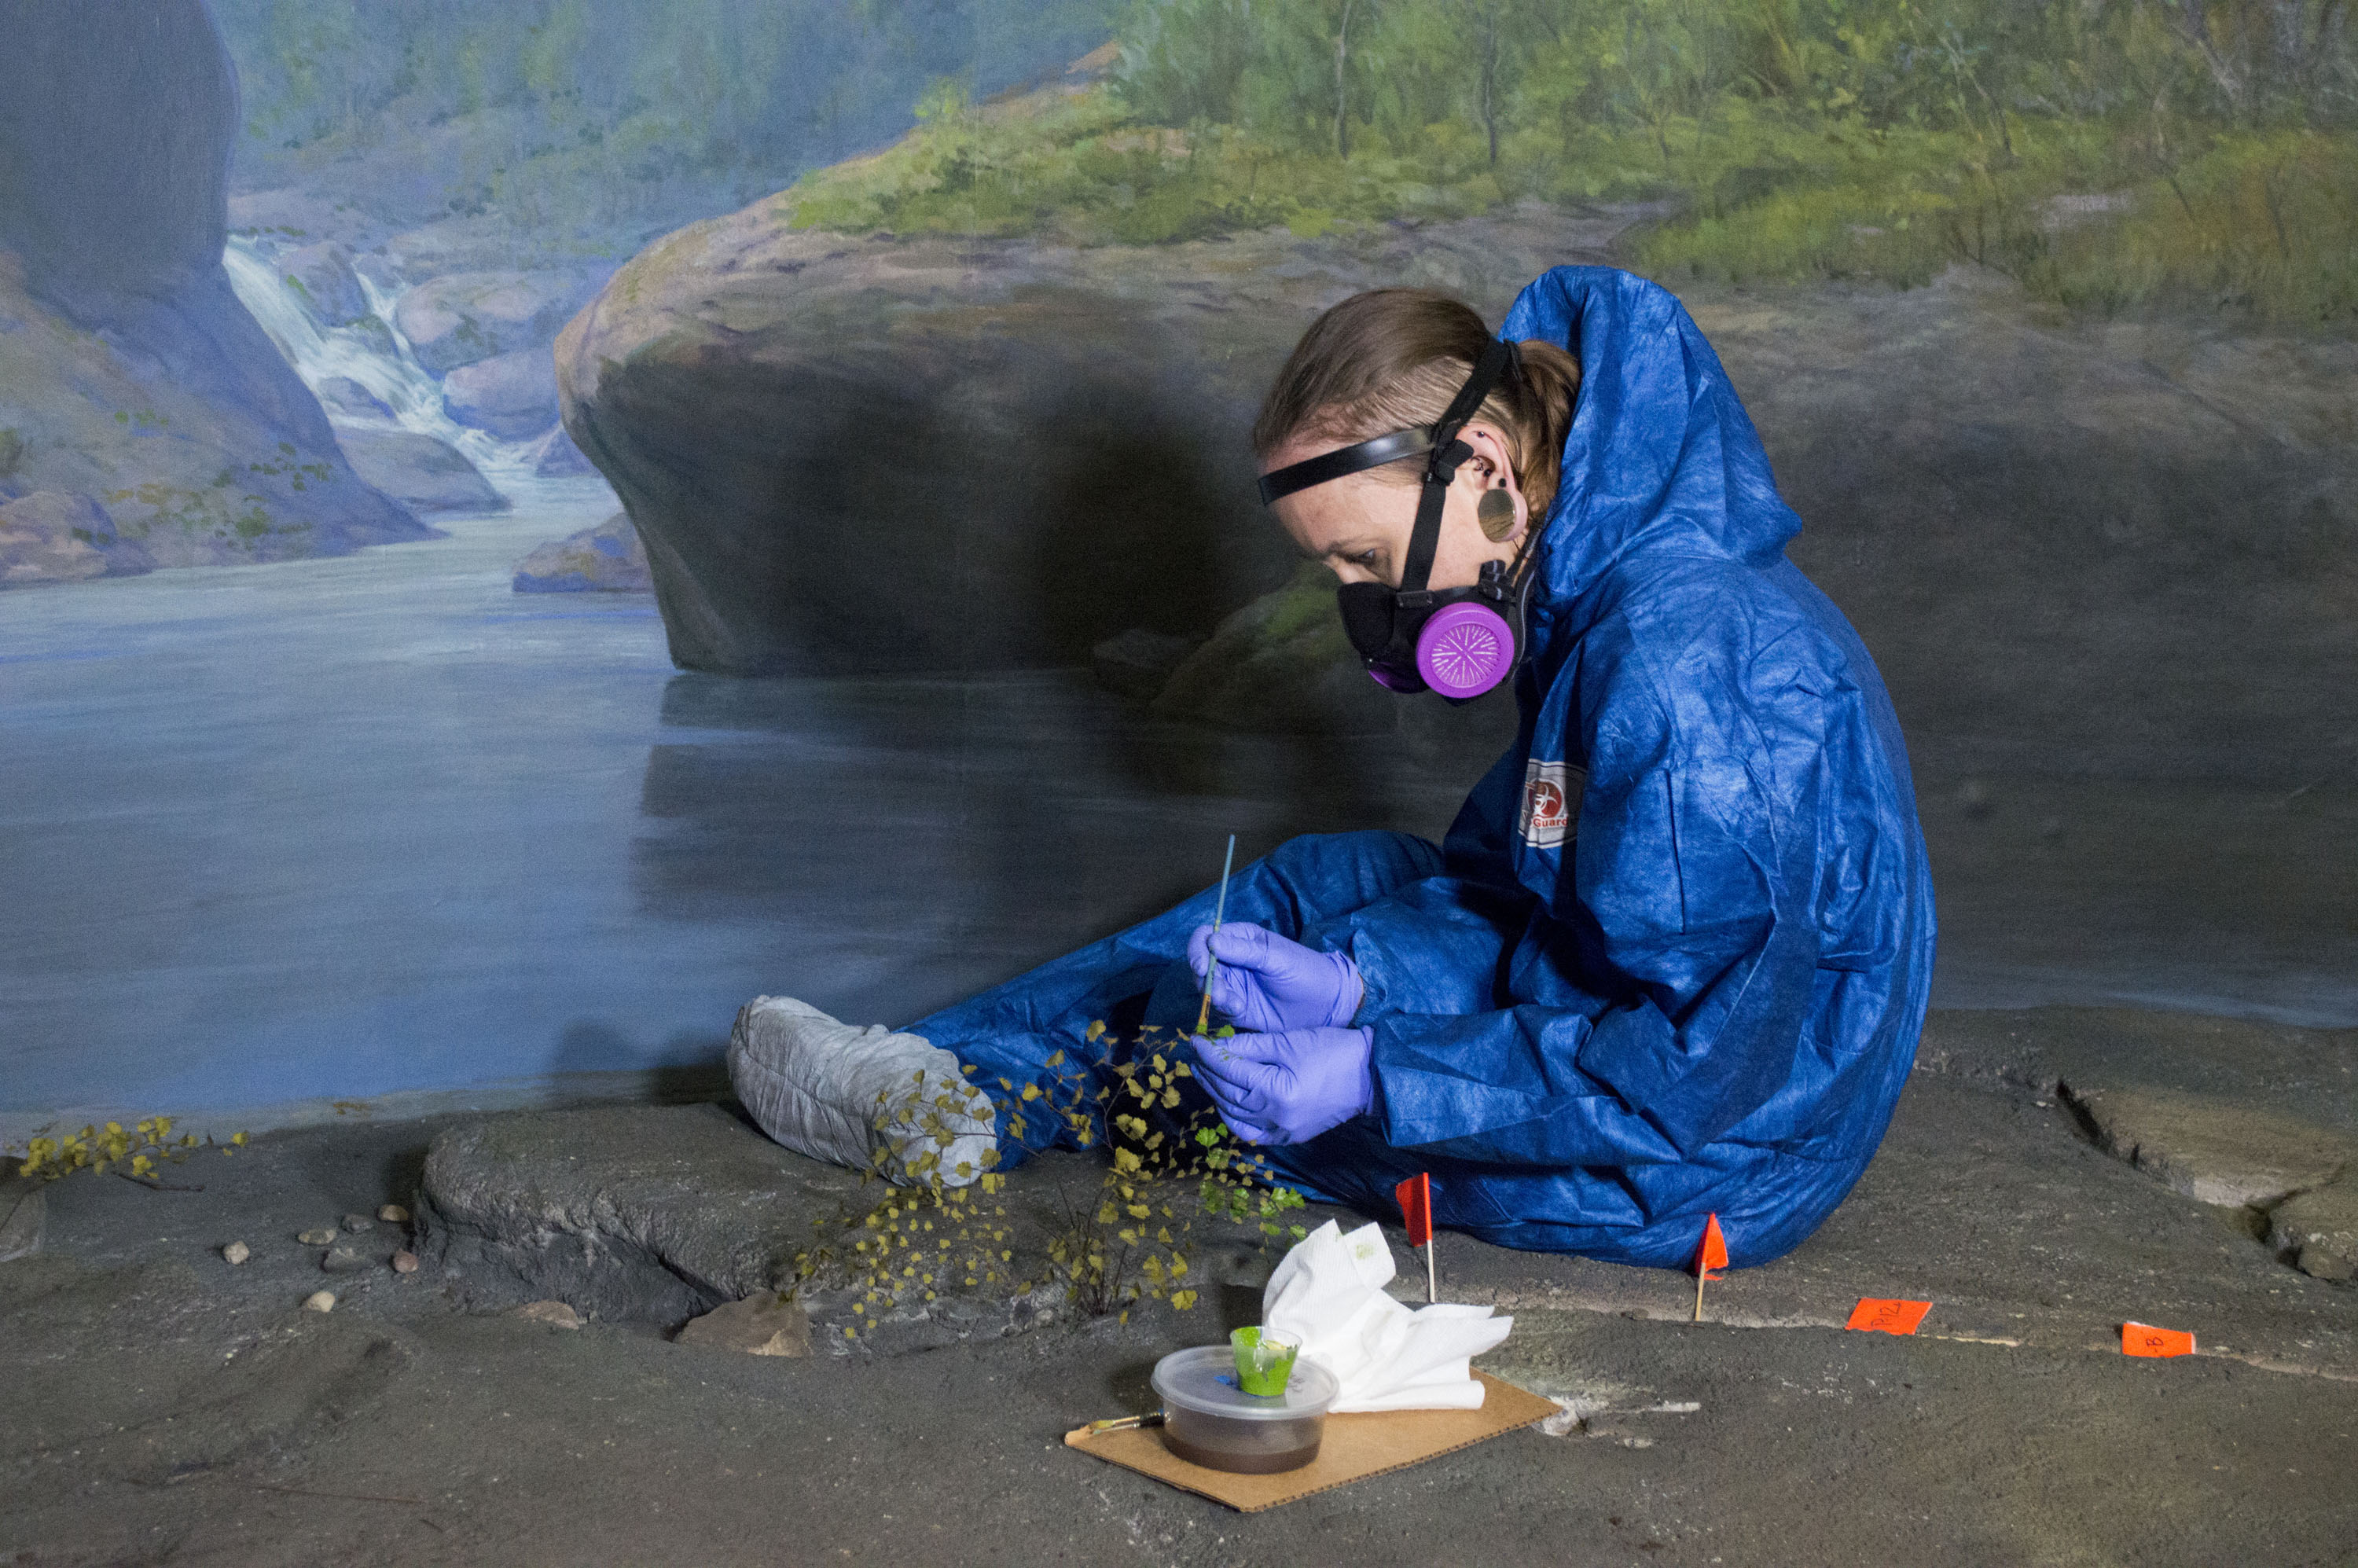 Woman in blue Tyvek suit repairs flower inside diorama